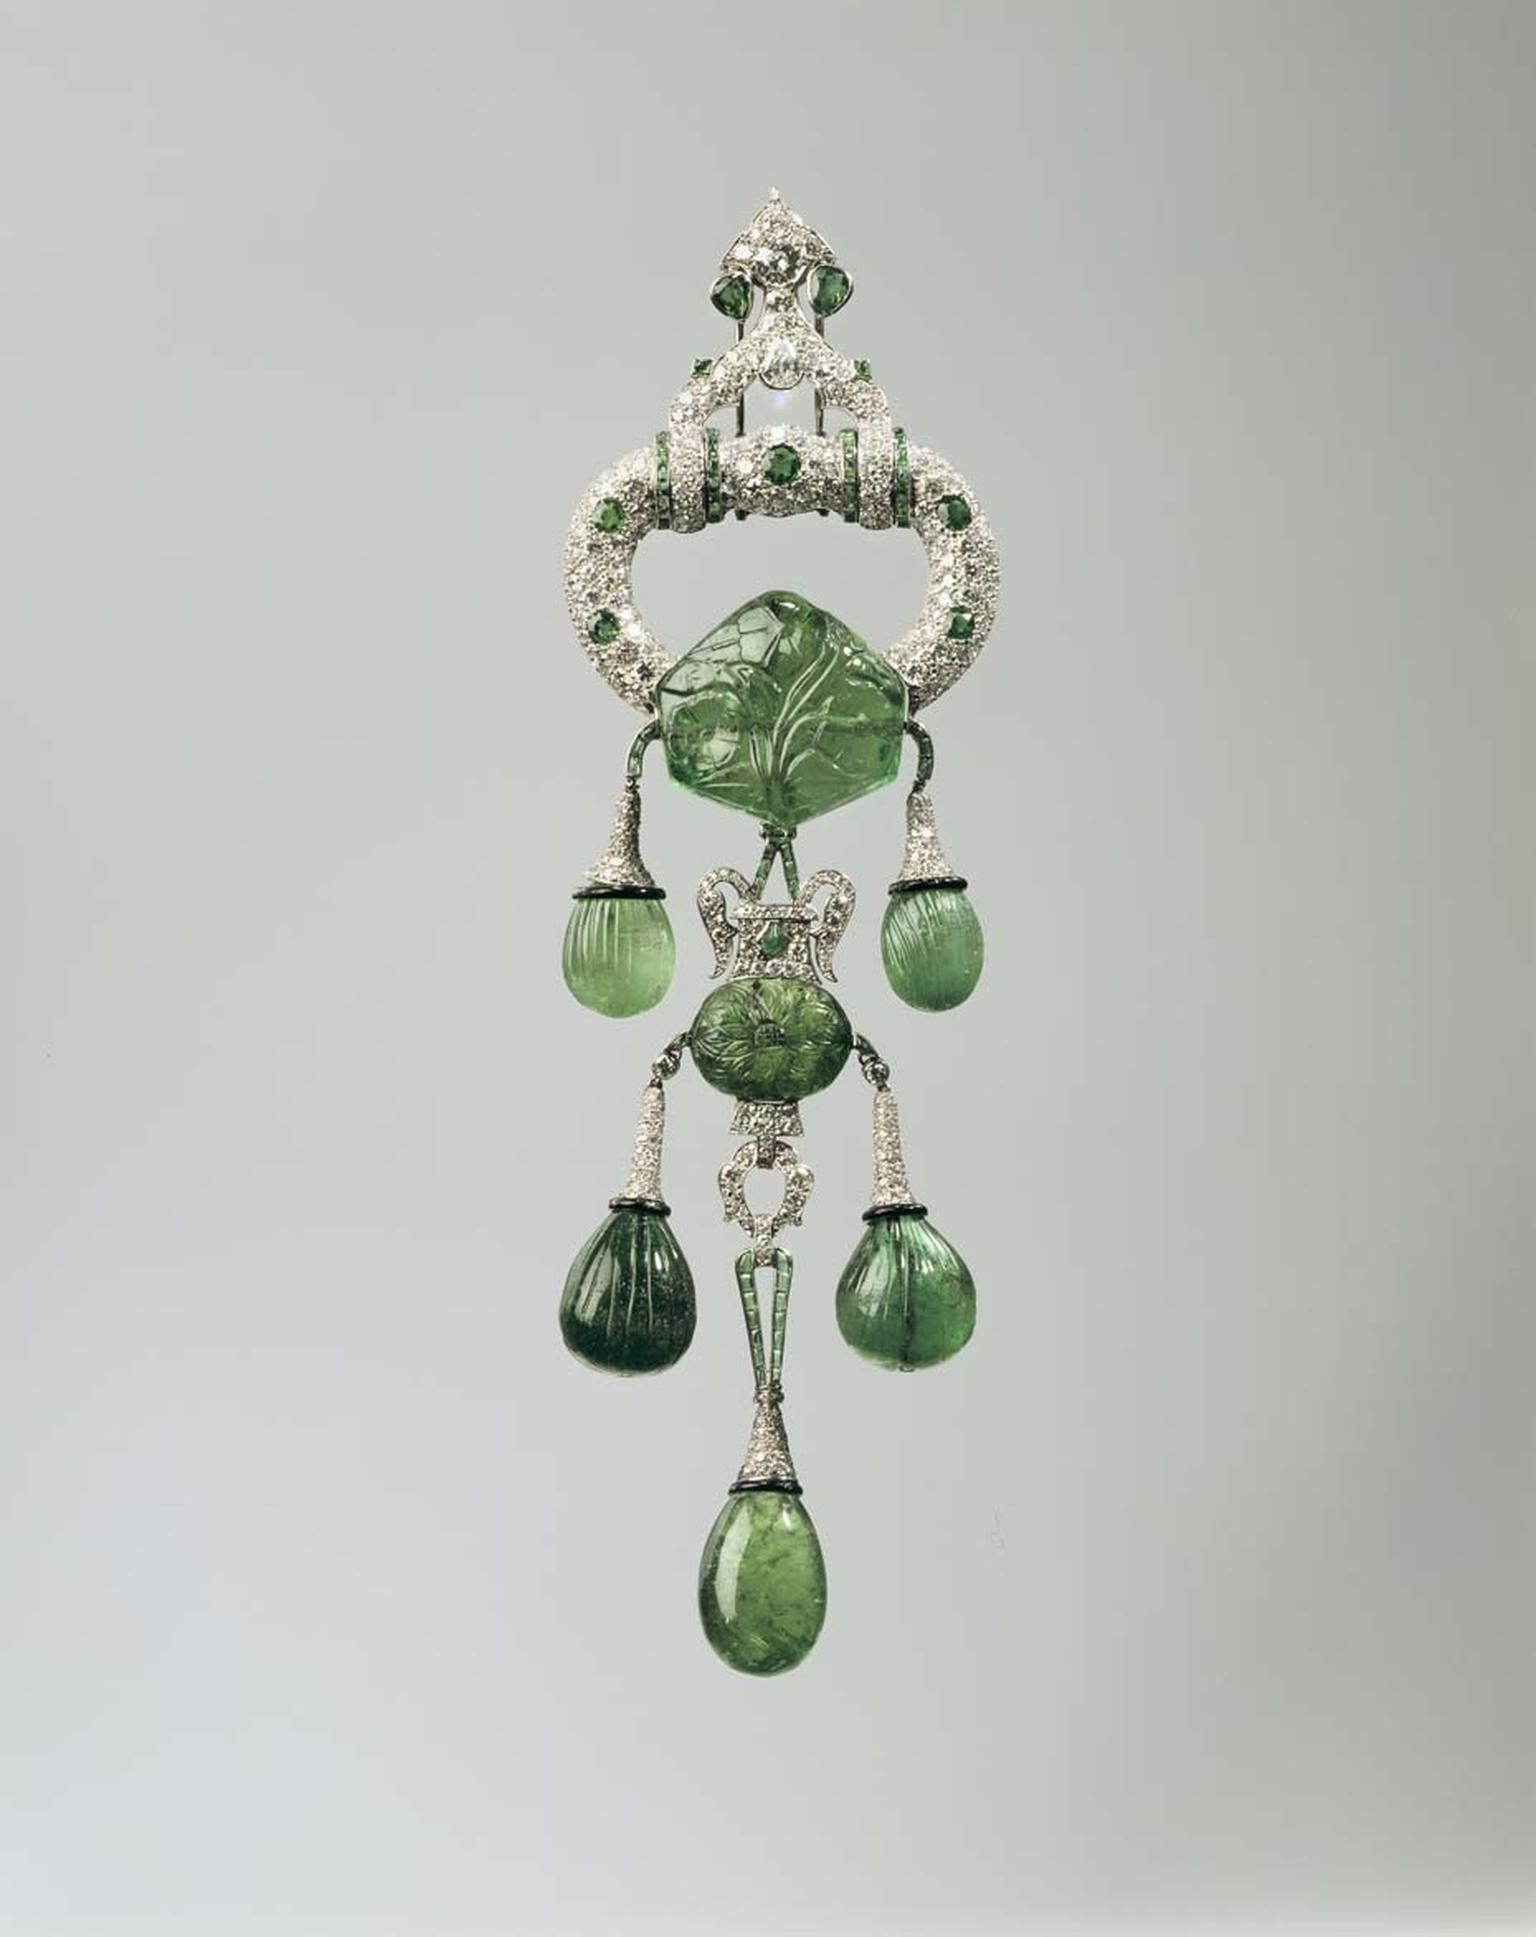 Cartier 1928 platinum pendant brooch with emeralds, diamonds and enamel. Image: Courtesy Hillwood Estate, Museum and Gardens.